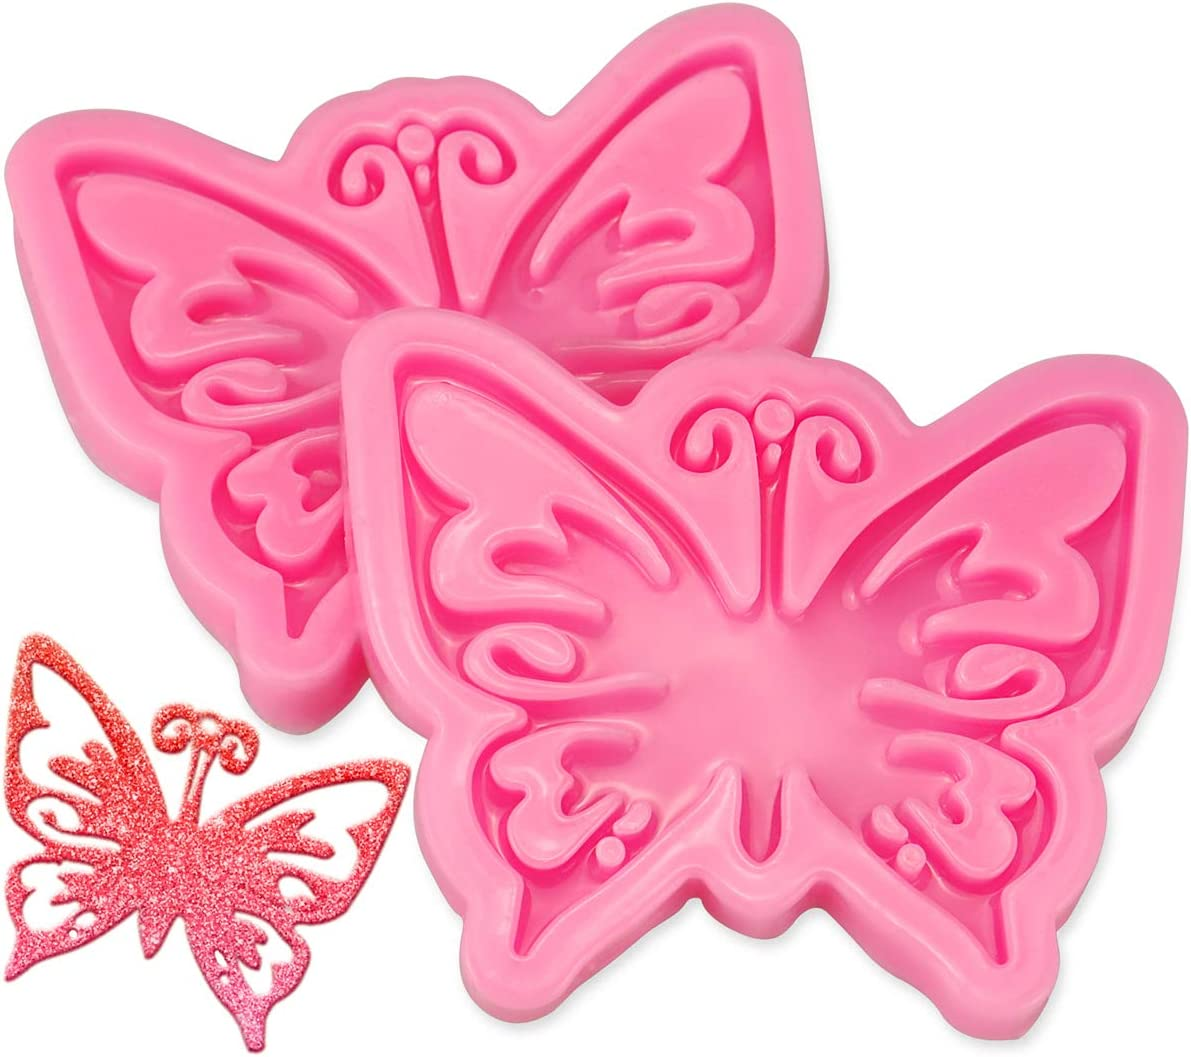 2 Pcs Butterfly Fondant Molds Silicone,Butterfly Skeleton Keychain Molds,Food Grade Silicone Molds for Candy, Icing, Chocolate, Cake Decoration, Pendant and Polymer Clay